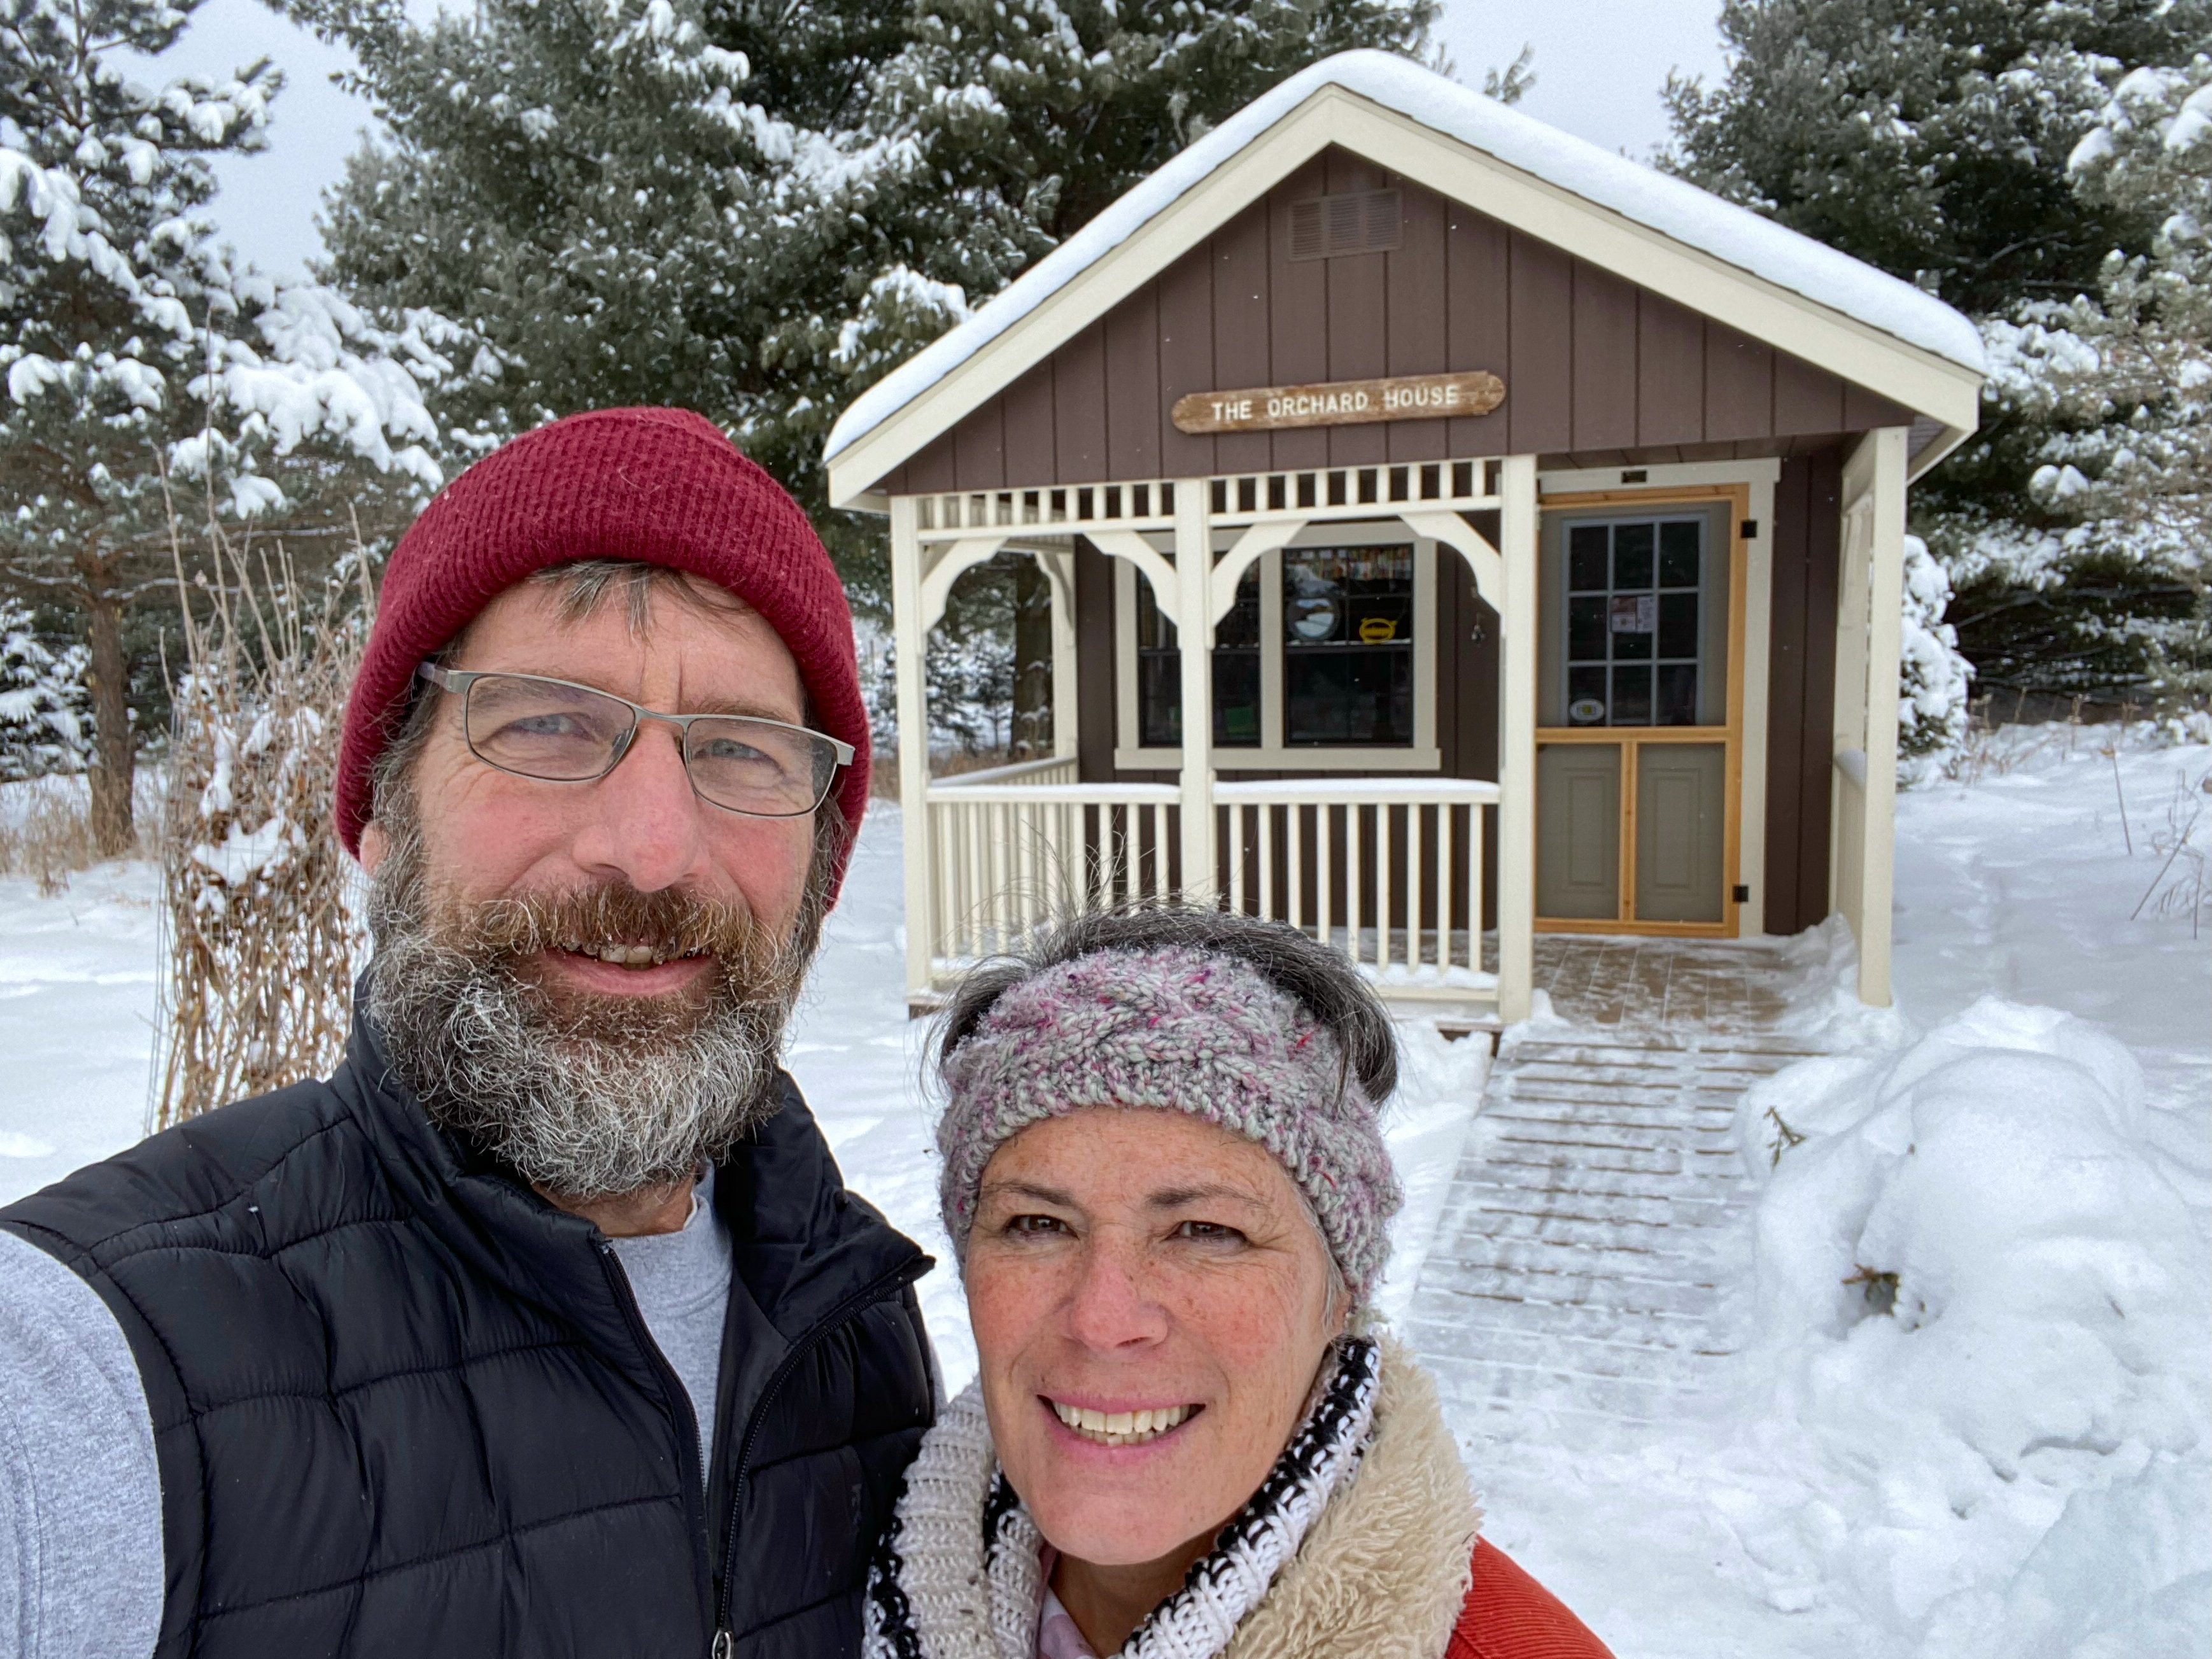 Kim and Craig Yolitz at McKenzie Orchard in Spooner Wisconsin in front of their retail cabin shed store